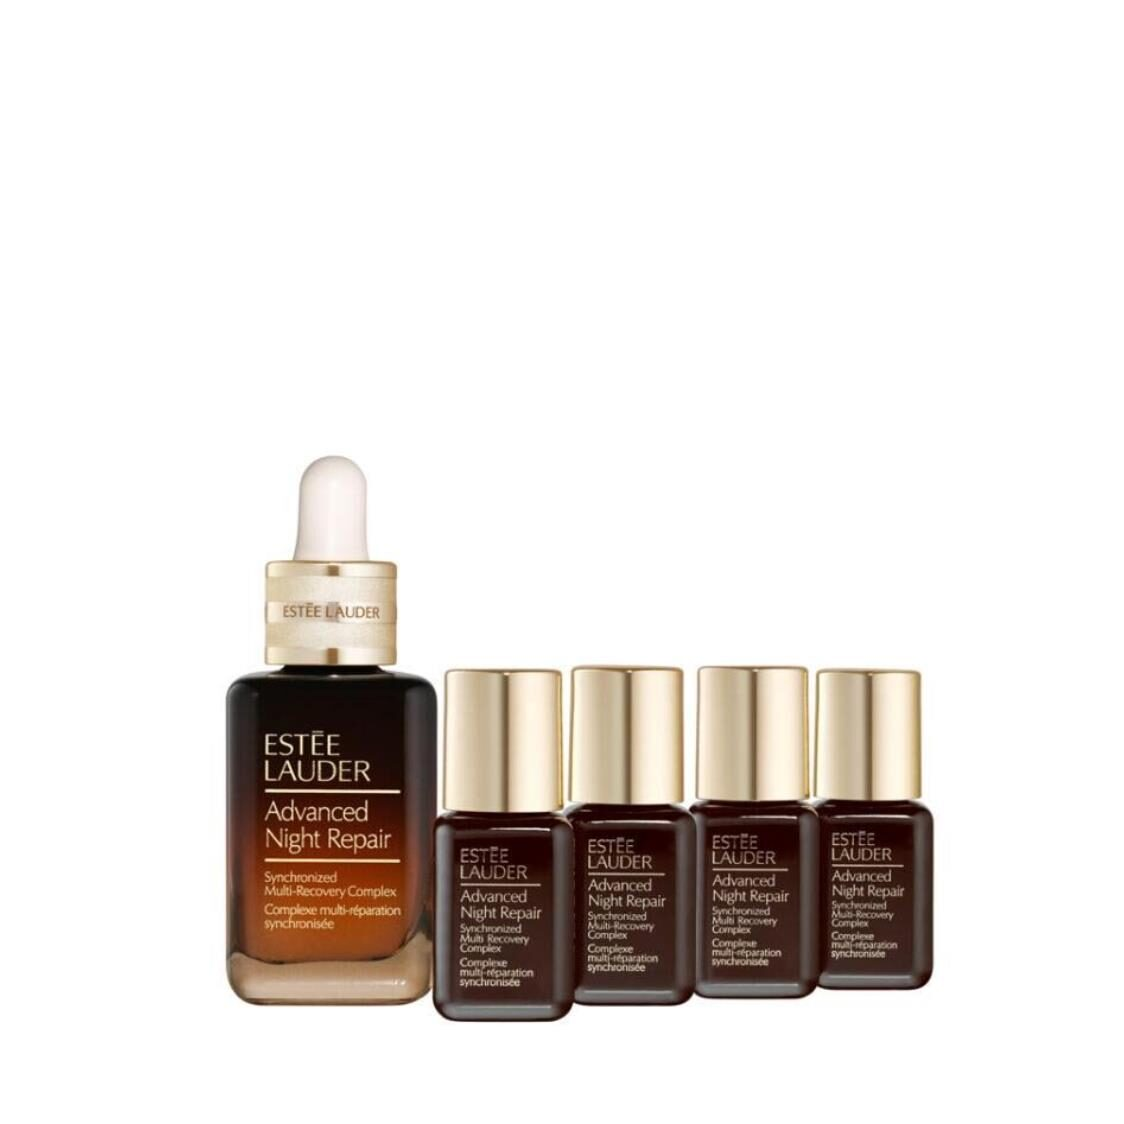 Estee Lauder Repair Renew Hydrate Set